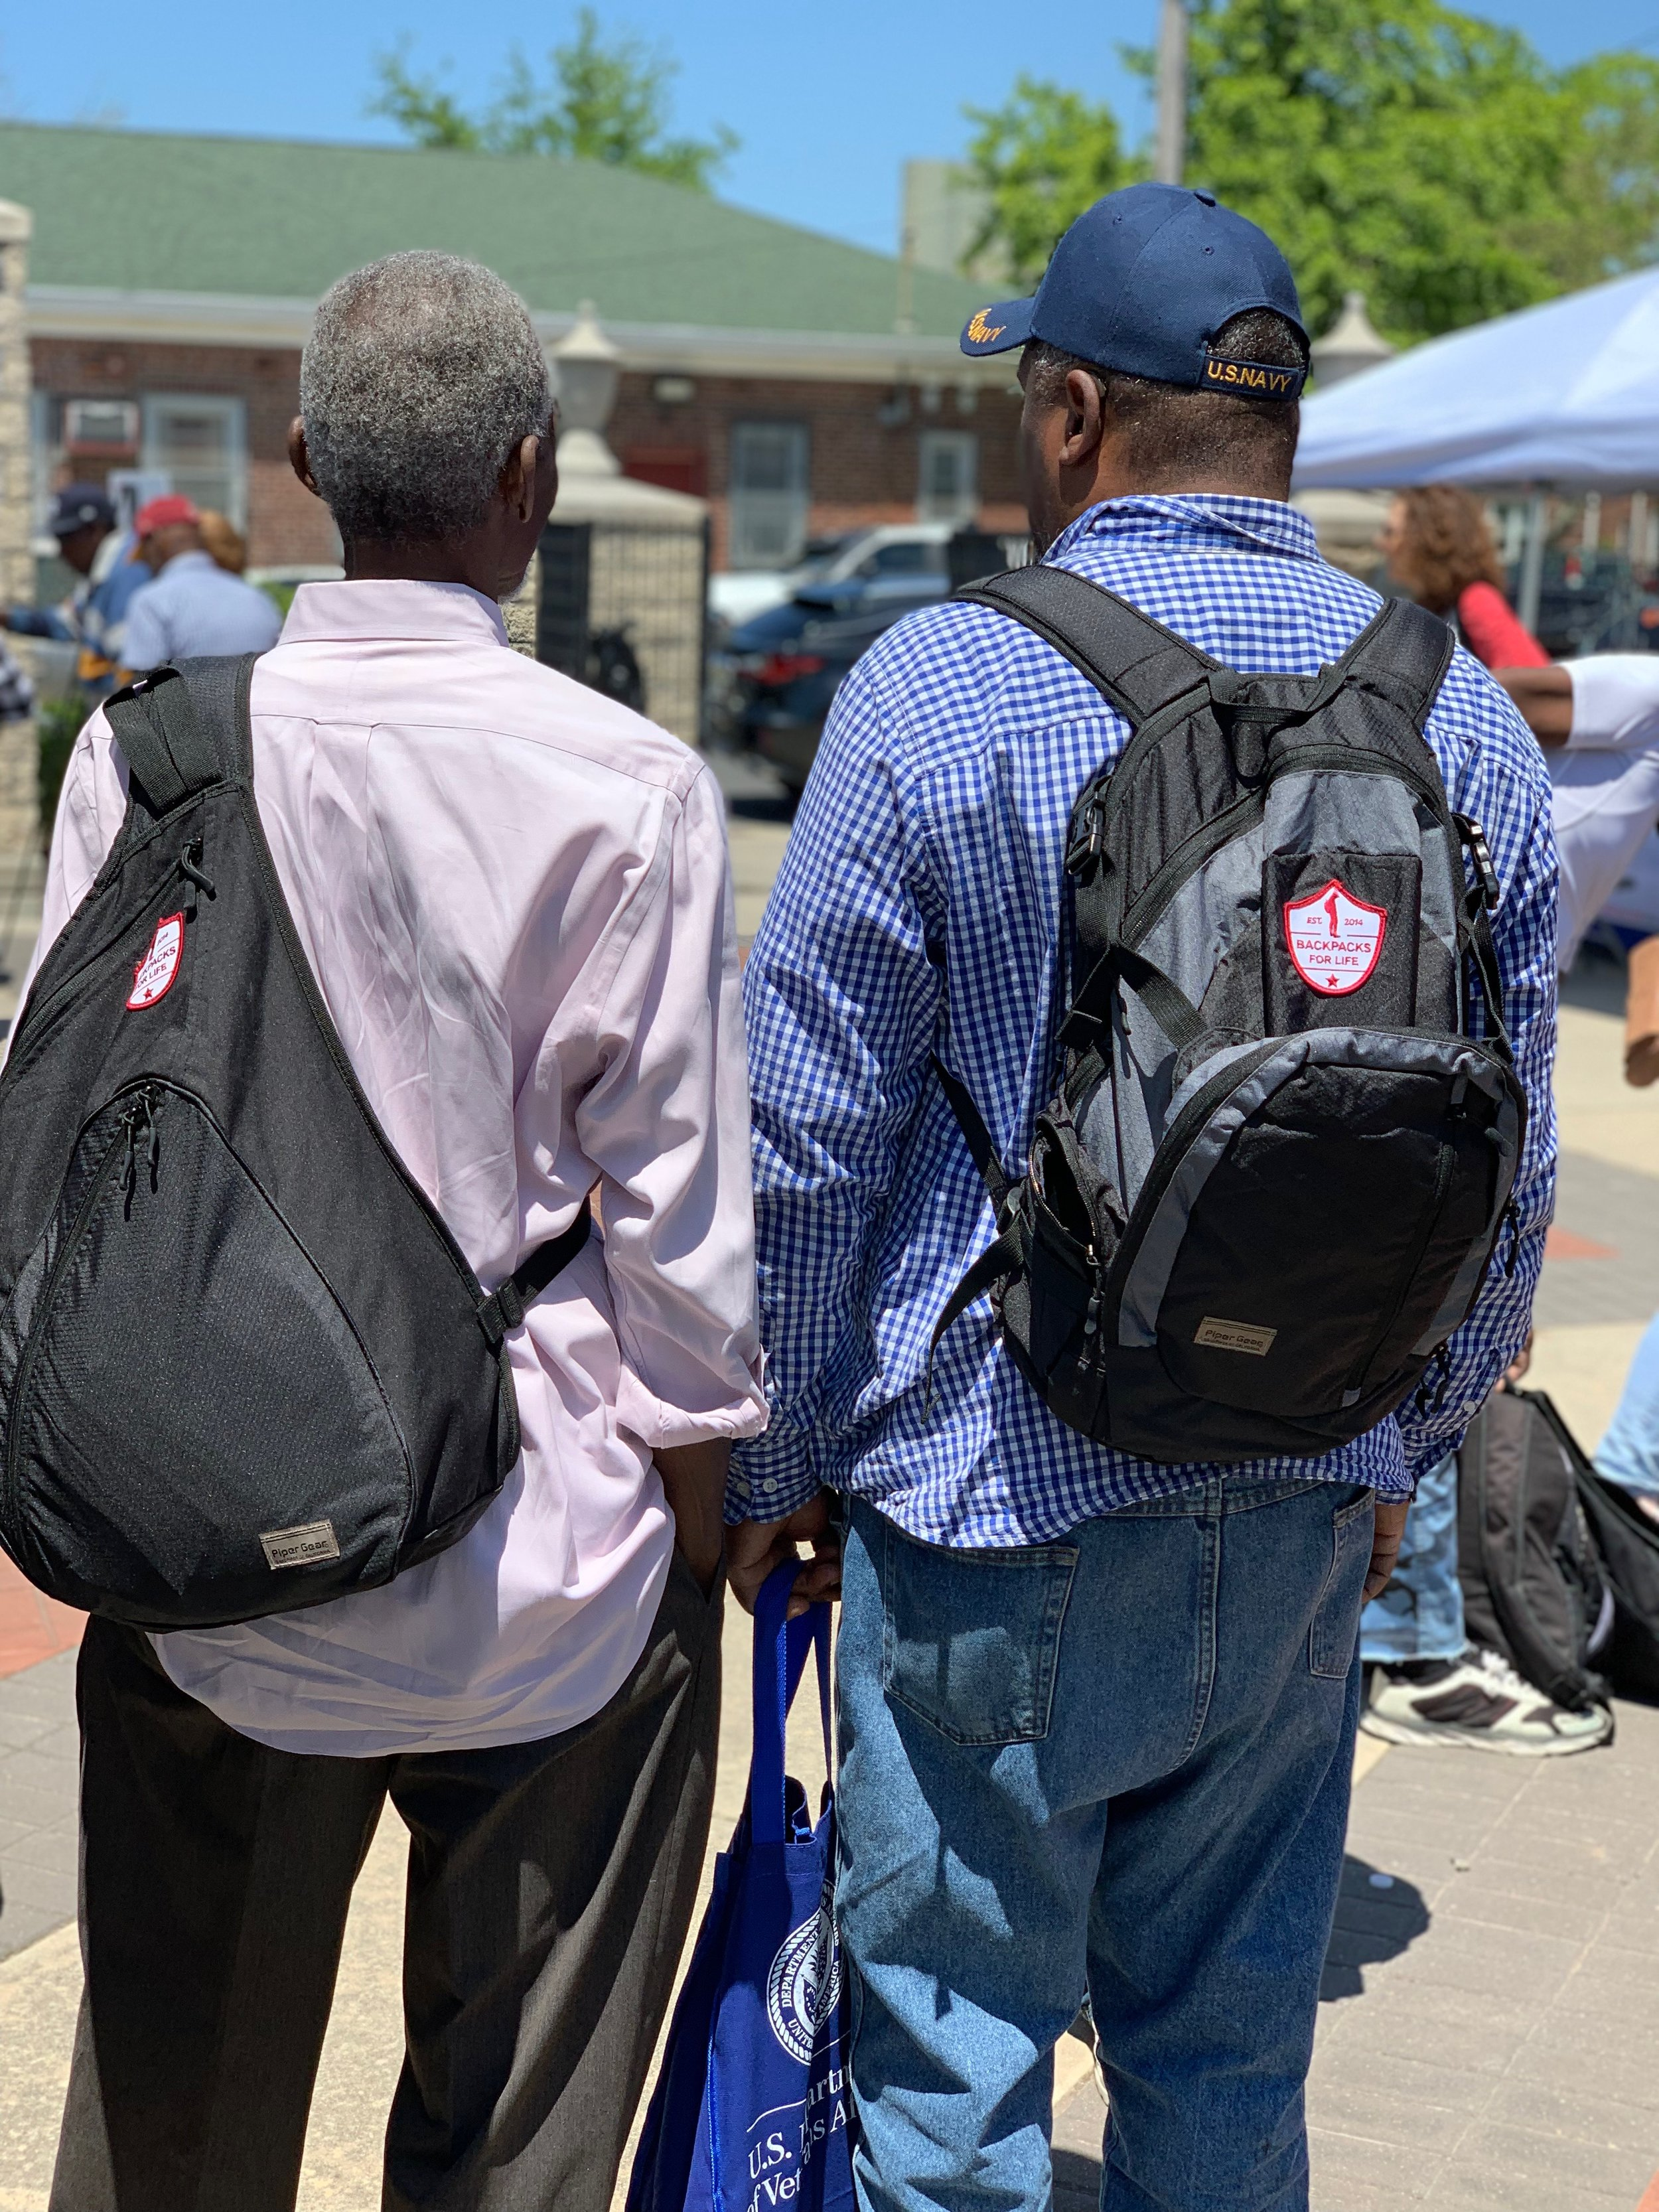 Two veterans showing off their new backpacks